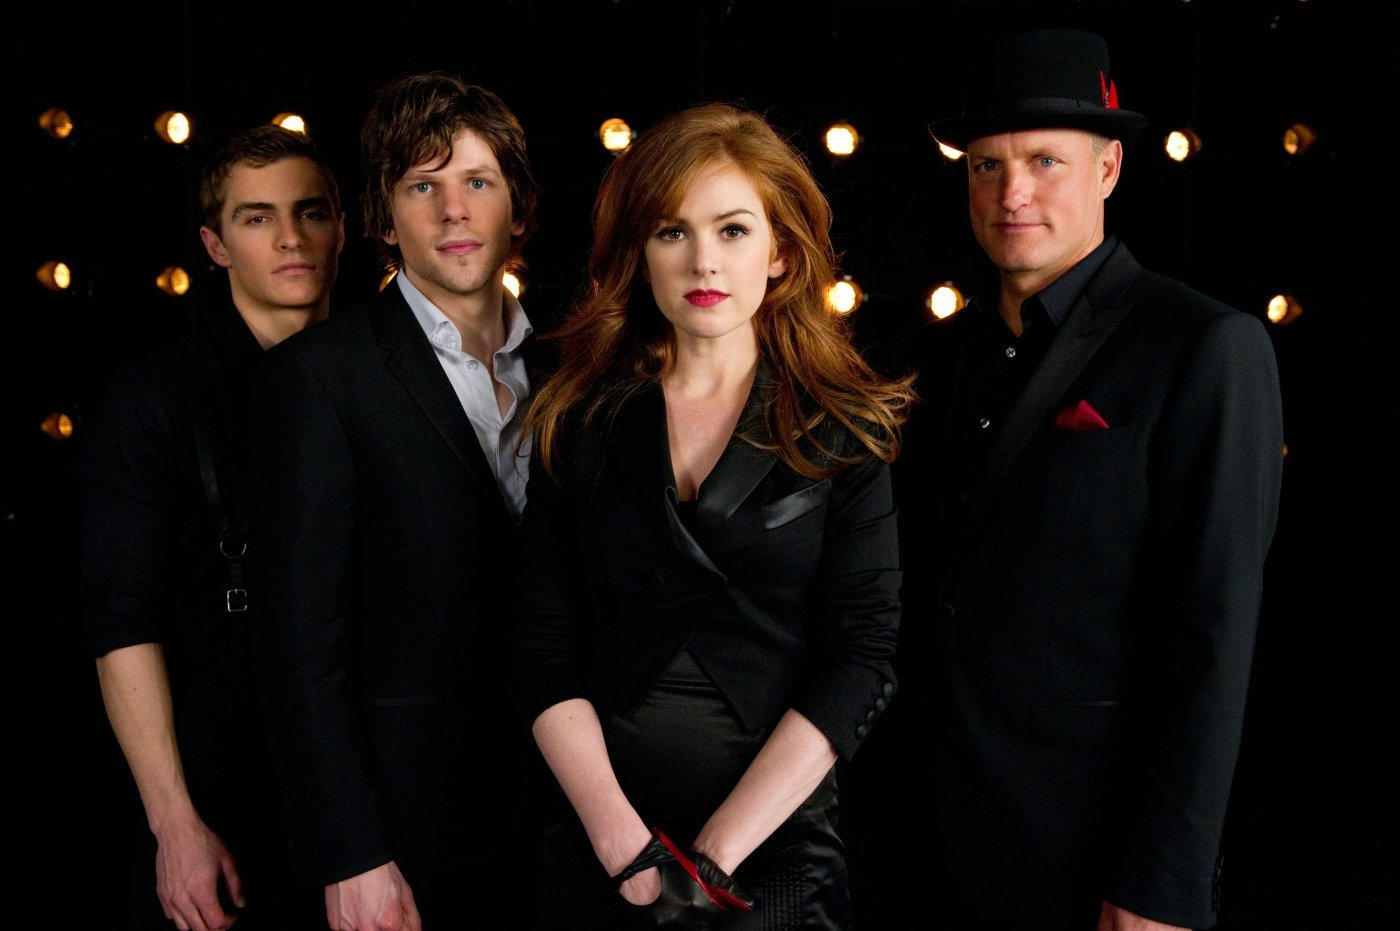 "Die Unfassbaren – Now You See Me <span class=""imdbRatingPlugin"" data-user=""ur56394889"" data-title=""tt1670345"" data-style=""p2""><a href=""http://www.imdb.com/title/tt1670345/?ref_=plg_rt_1""><img src=""http://g-ecx.images-amazon.com/images/G/01/imdb/plugins/rating/images/imdb_38x18.png"" alt=""Now You See Me (2013) on IMDb"" /> </a></span><script>(function(d,s,id){var js,stags=d.getElementsByTagName(s)[0];if(d.getElementById(id)){return;}js=d.createElement(s);js.id=id;js.src=""http://g-ec2.images-amazon.com/images/G/01/imdb/plugins/rating/js/rating.min.js"";stags.parentNode.insertBefore(js,stags);})(document,'script','imdb-rating-api');</script>"